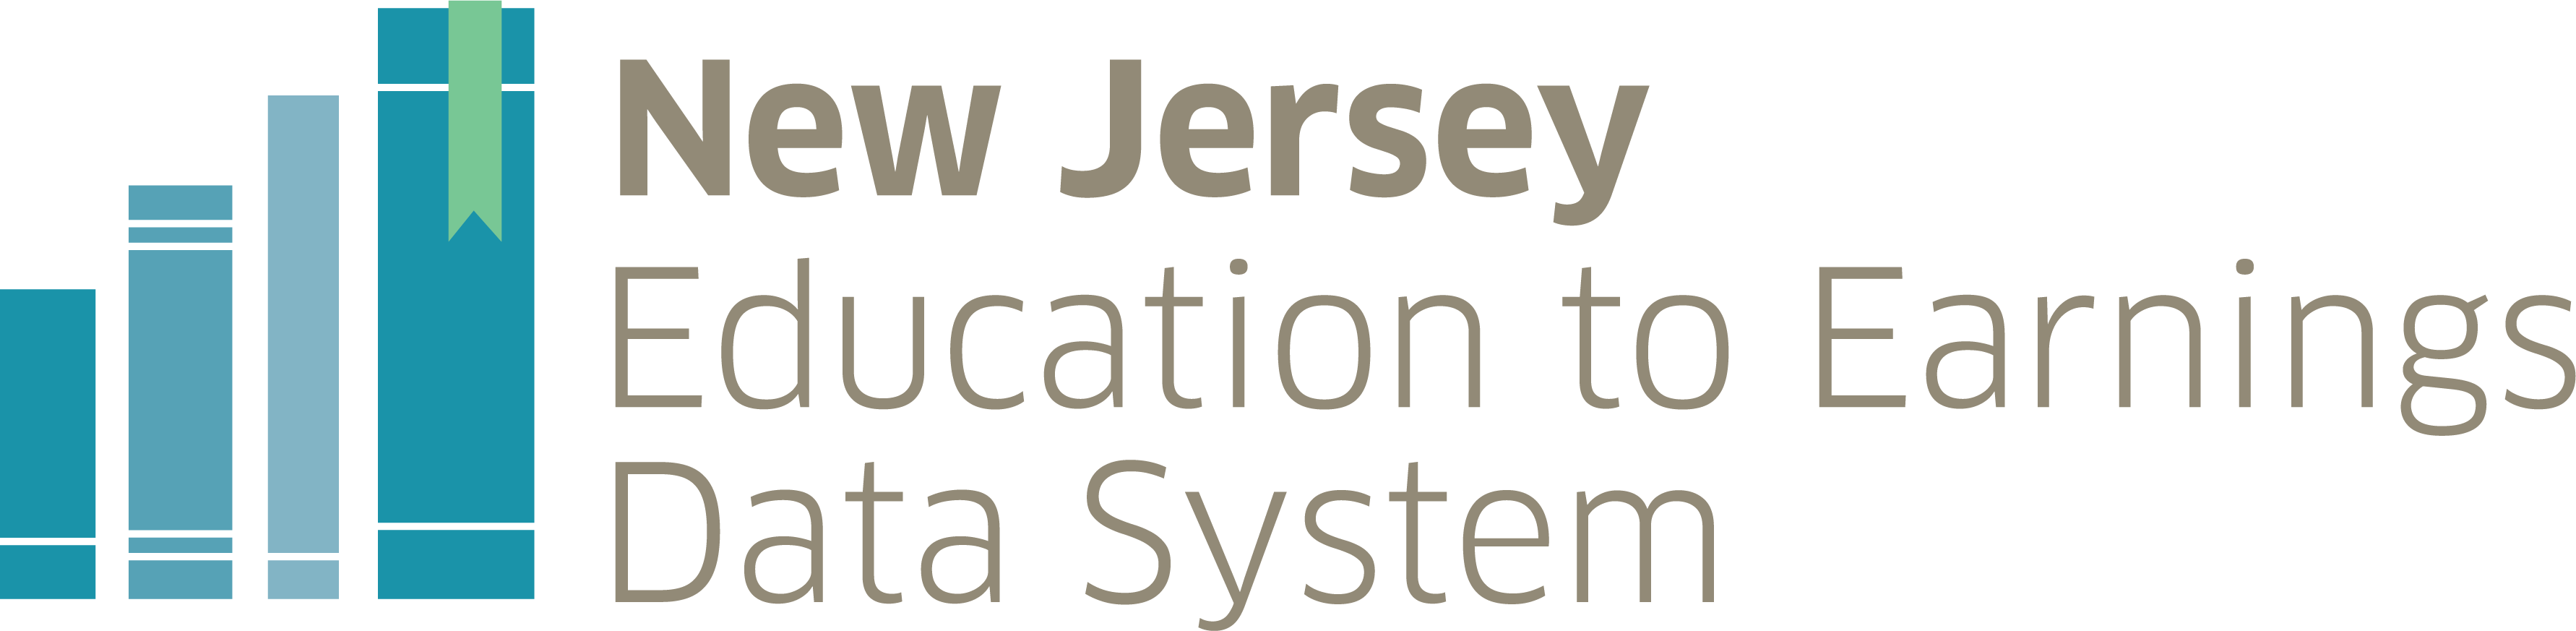 New Jersey's Education to Earnings Data System